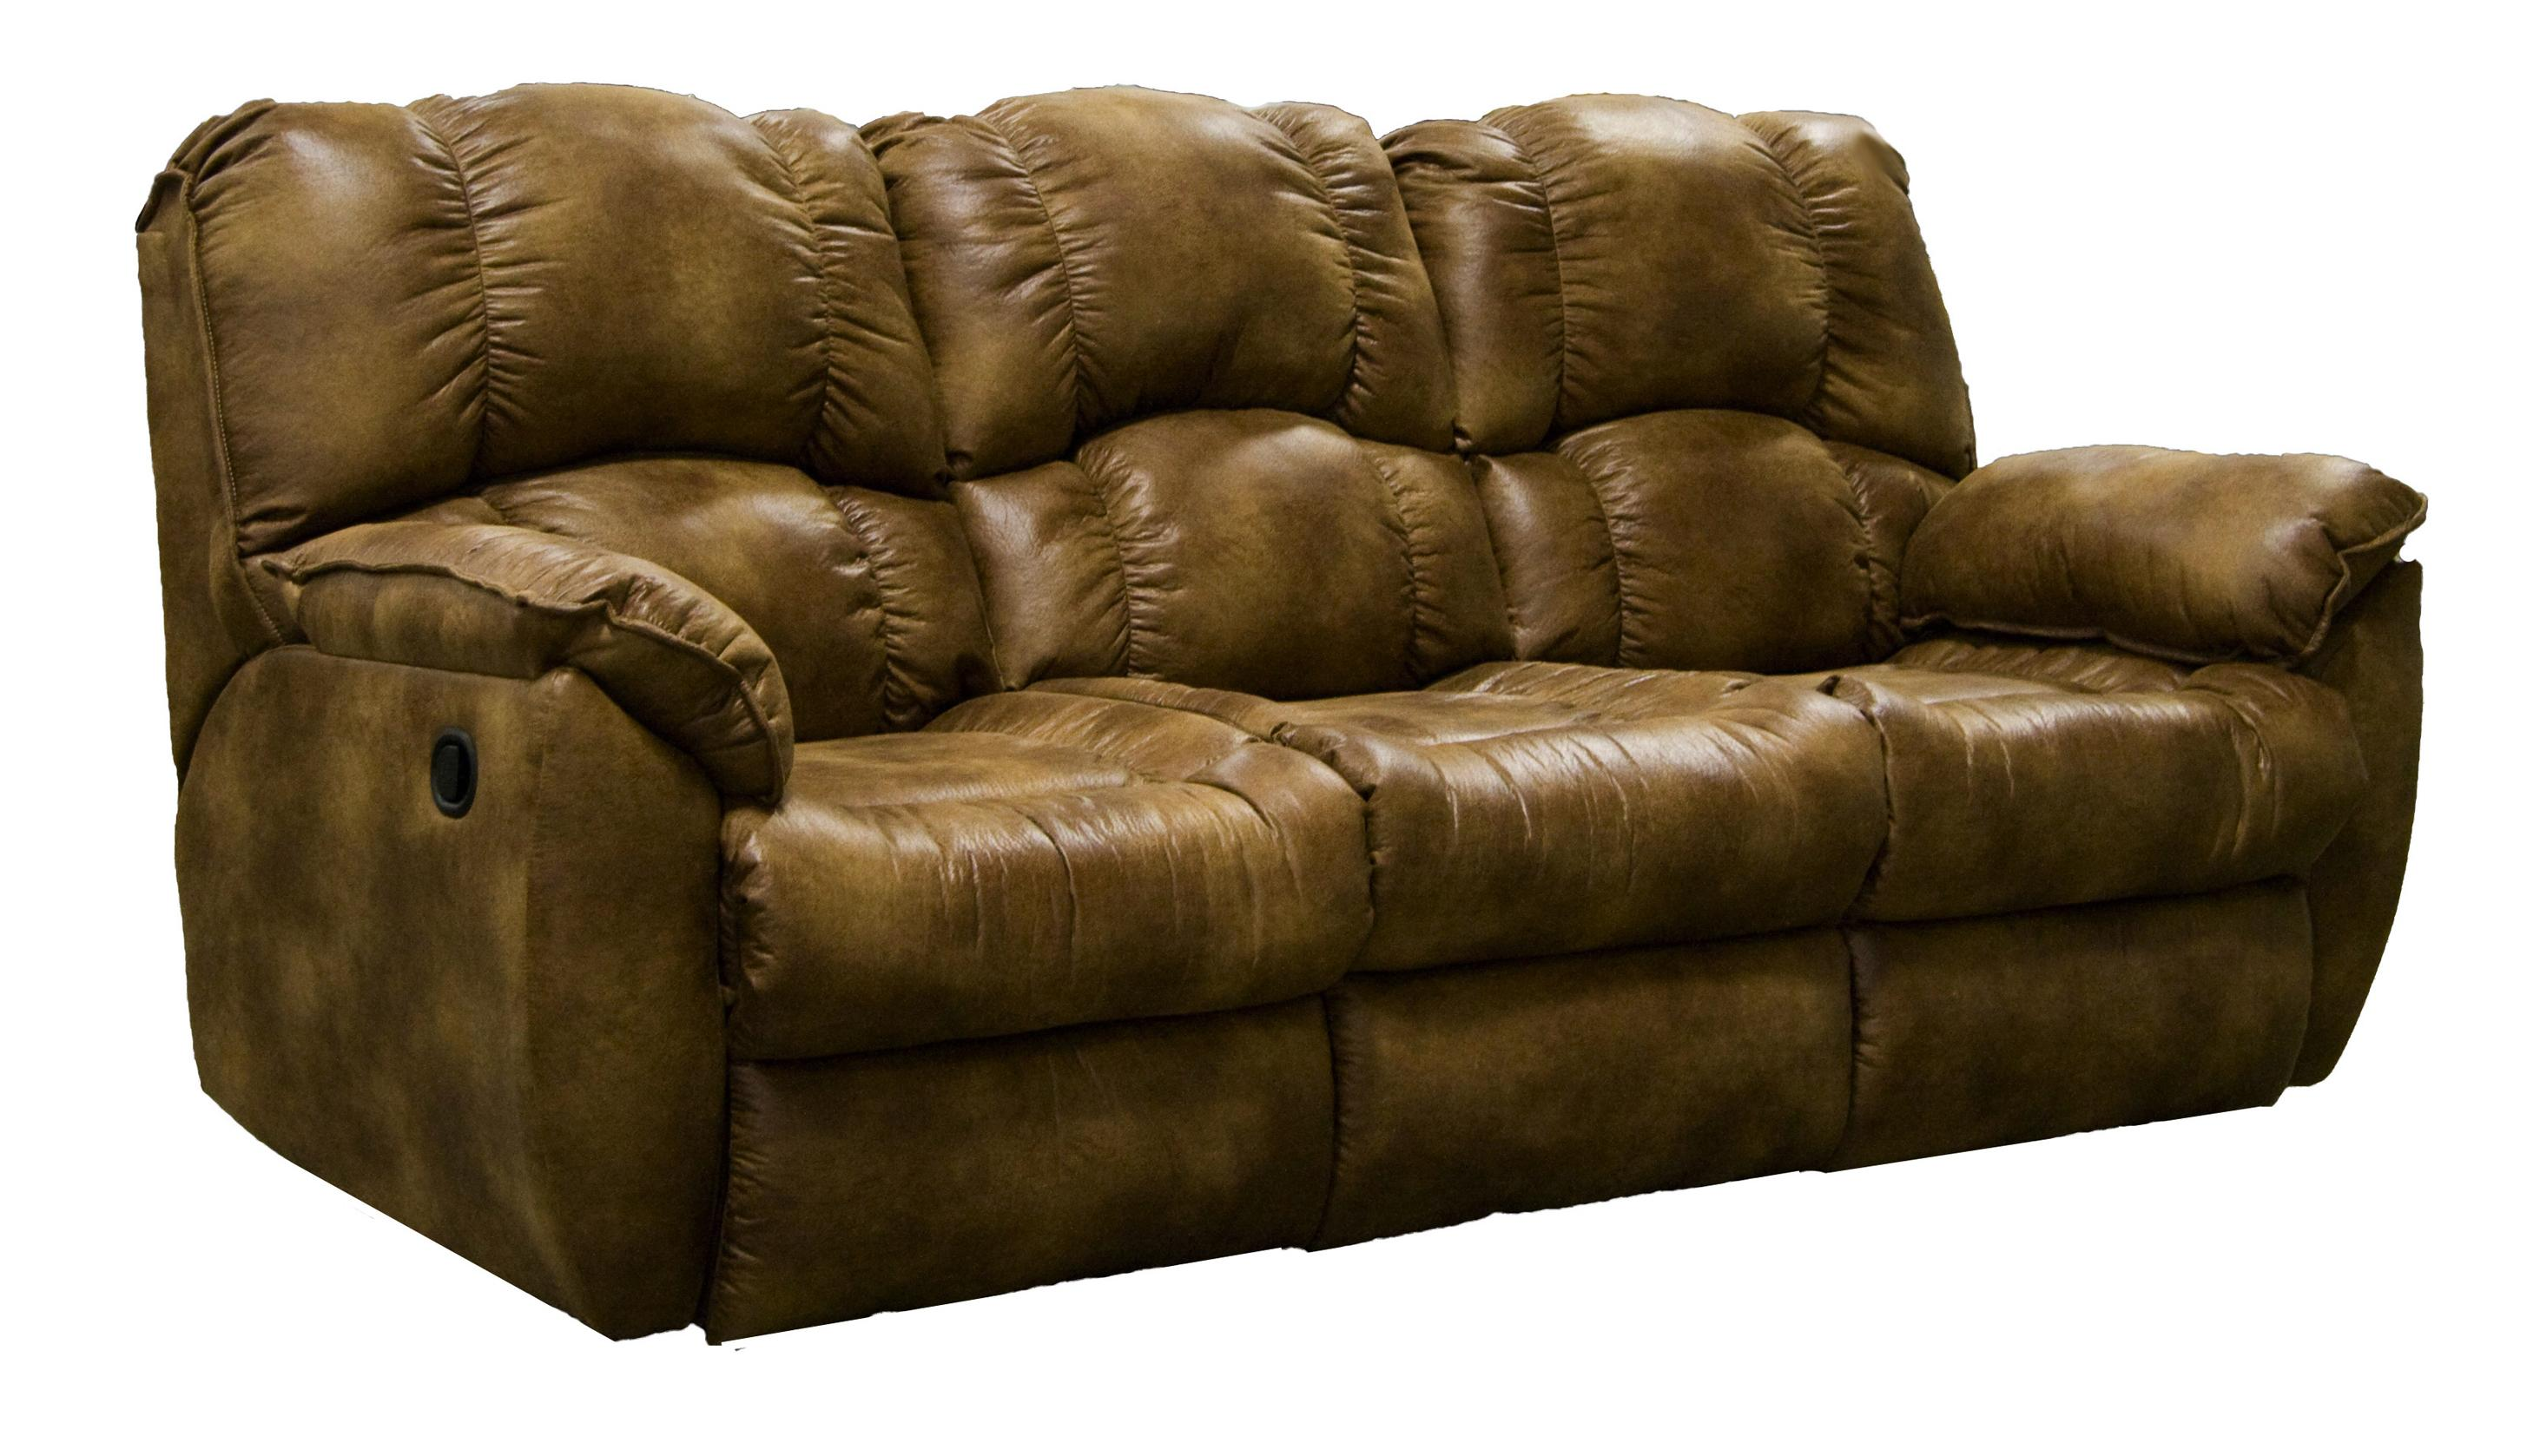 Southern Motion Weston Casual Reclining Sofa - Item Number: 739-31-245-17